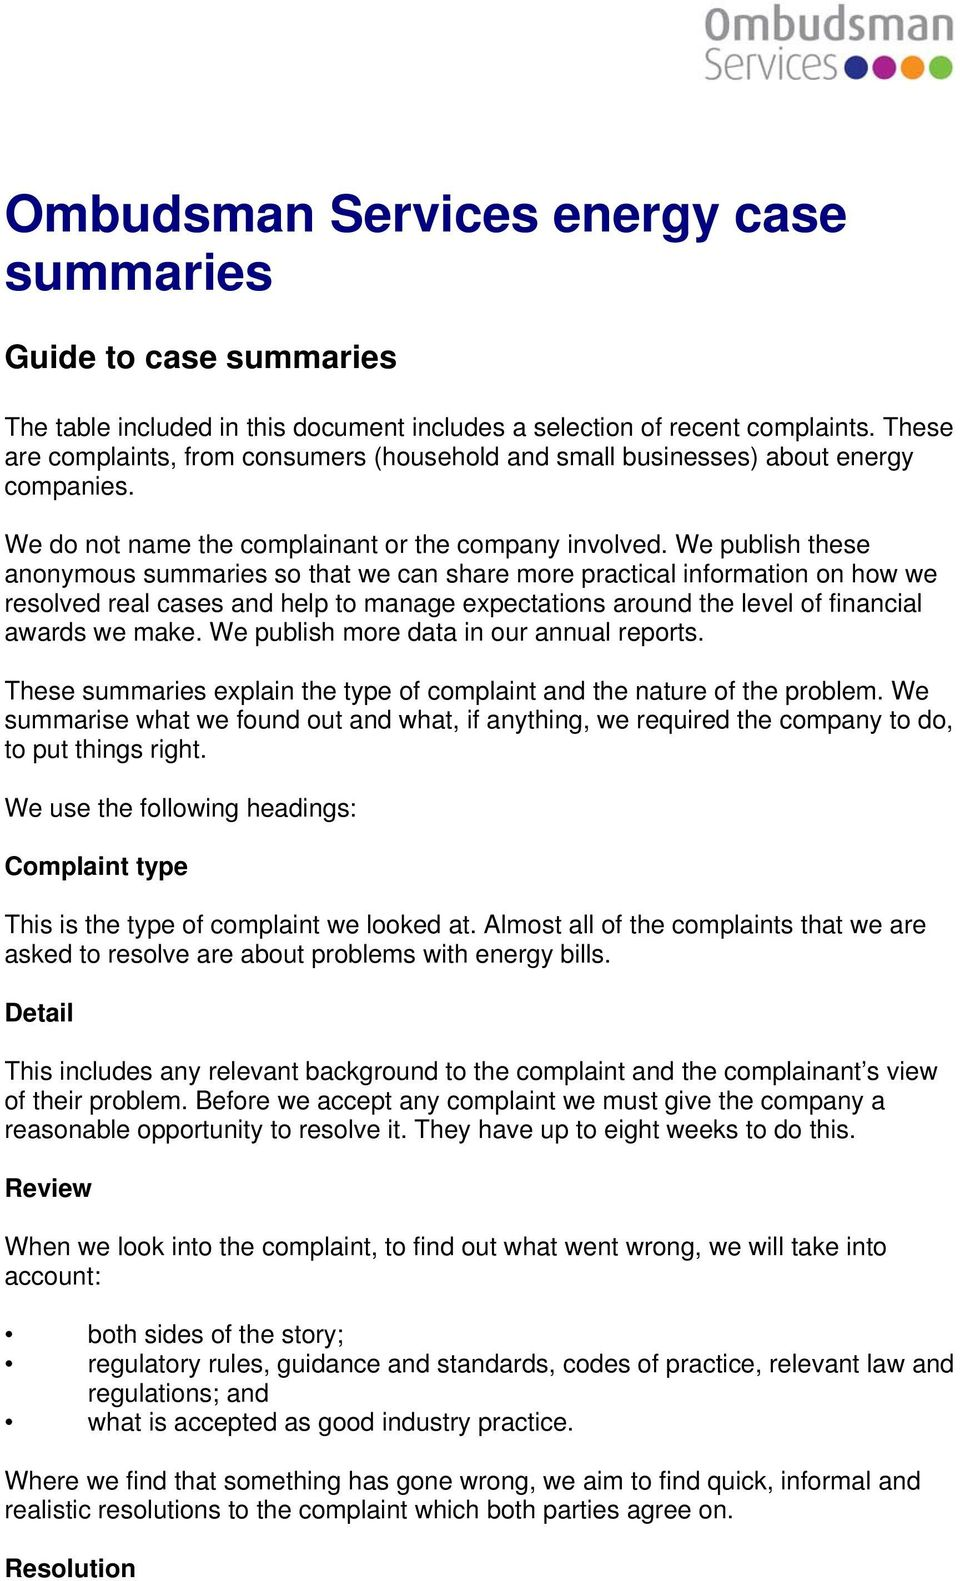 We publish these anonymous summaries so that we can share more practical information on how we resolved real cases and help to manage expectations around the level of financial awards we make.